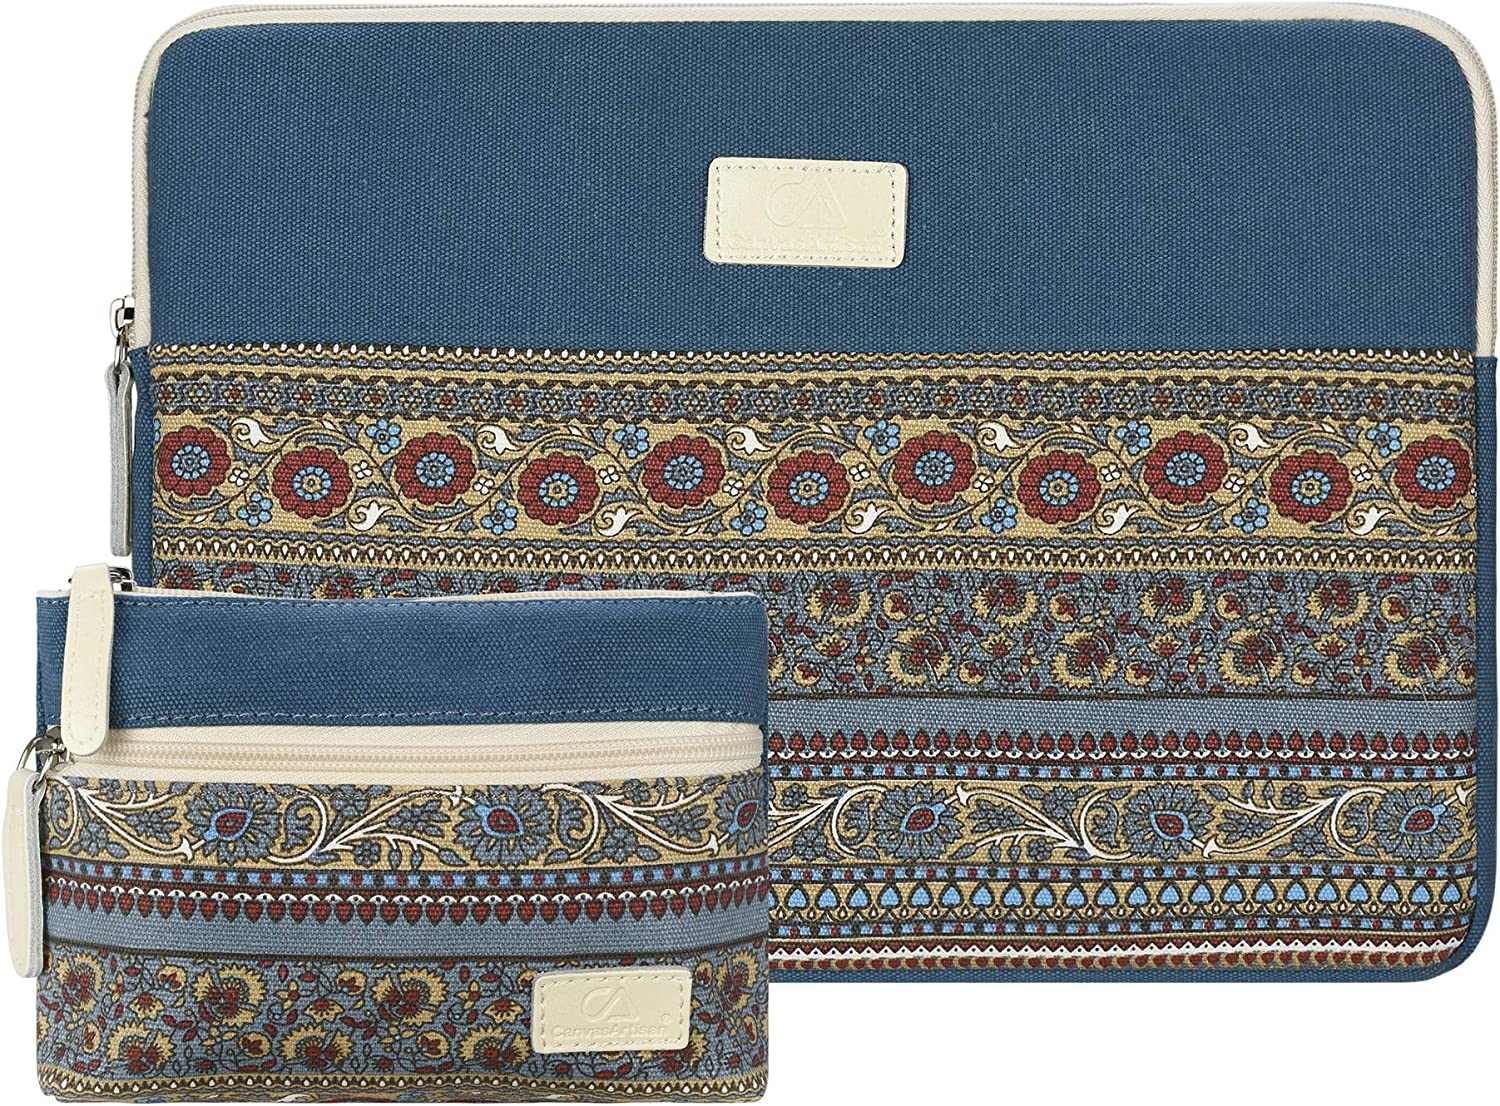 Case Star 13-13.3 inch Laptop Sleeve Canvas Bag Compatible 2018 New MacBook Air 13 A1466 A1932 Retina Display/MacBook Pro 13 A1708 A1706 with Small Case Electronics Accessories Organizer(Lake Blue)